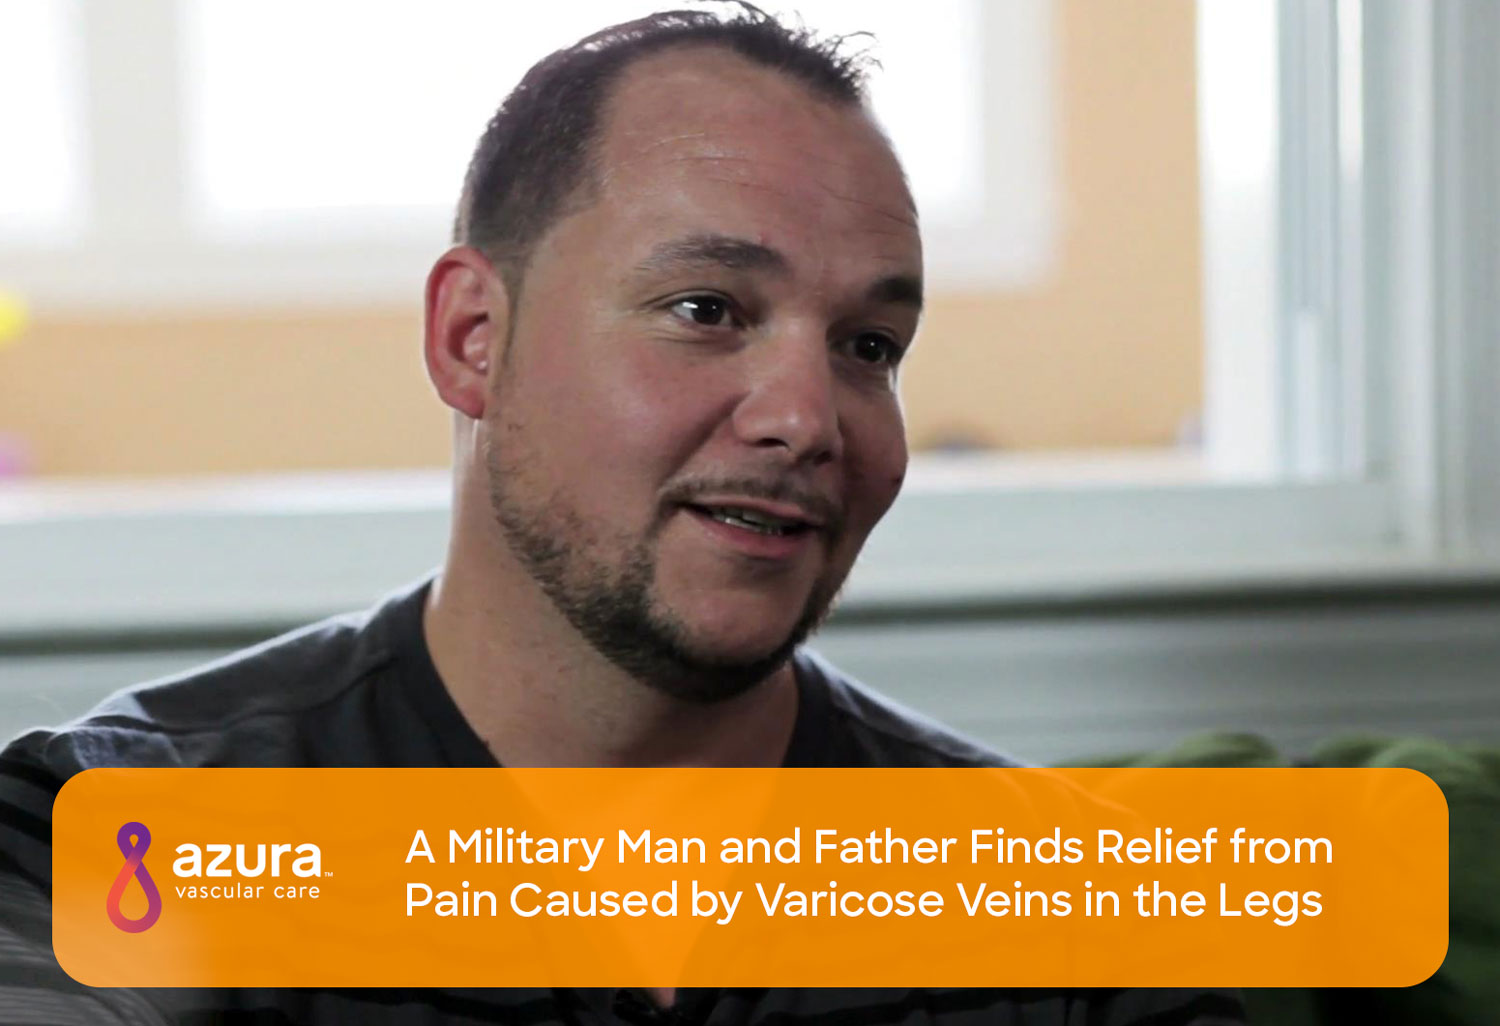 Military Man Amp Father Finds Relief From Varicose Veins